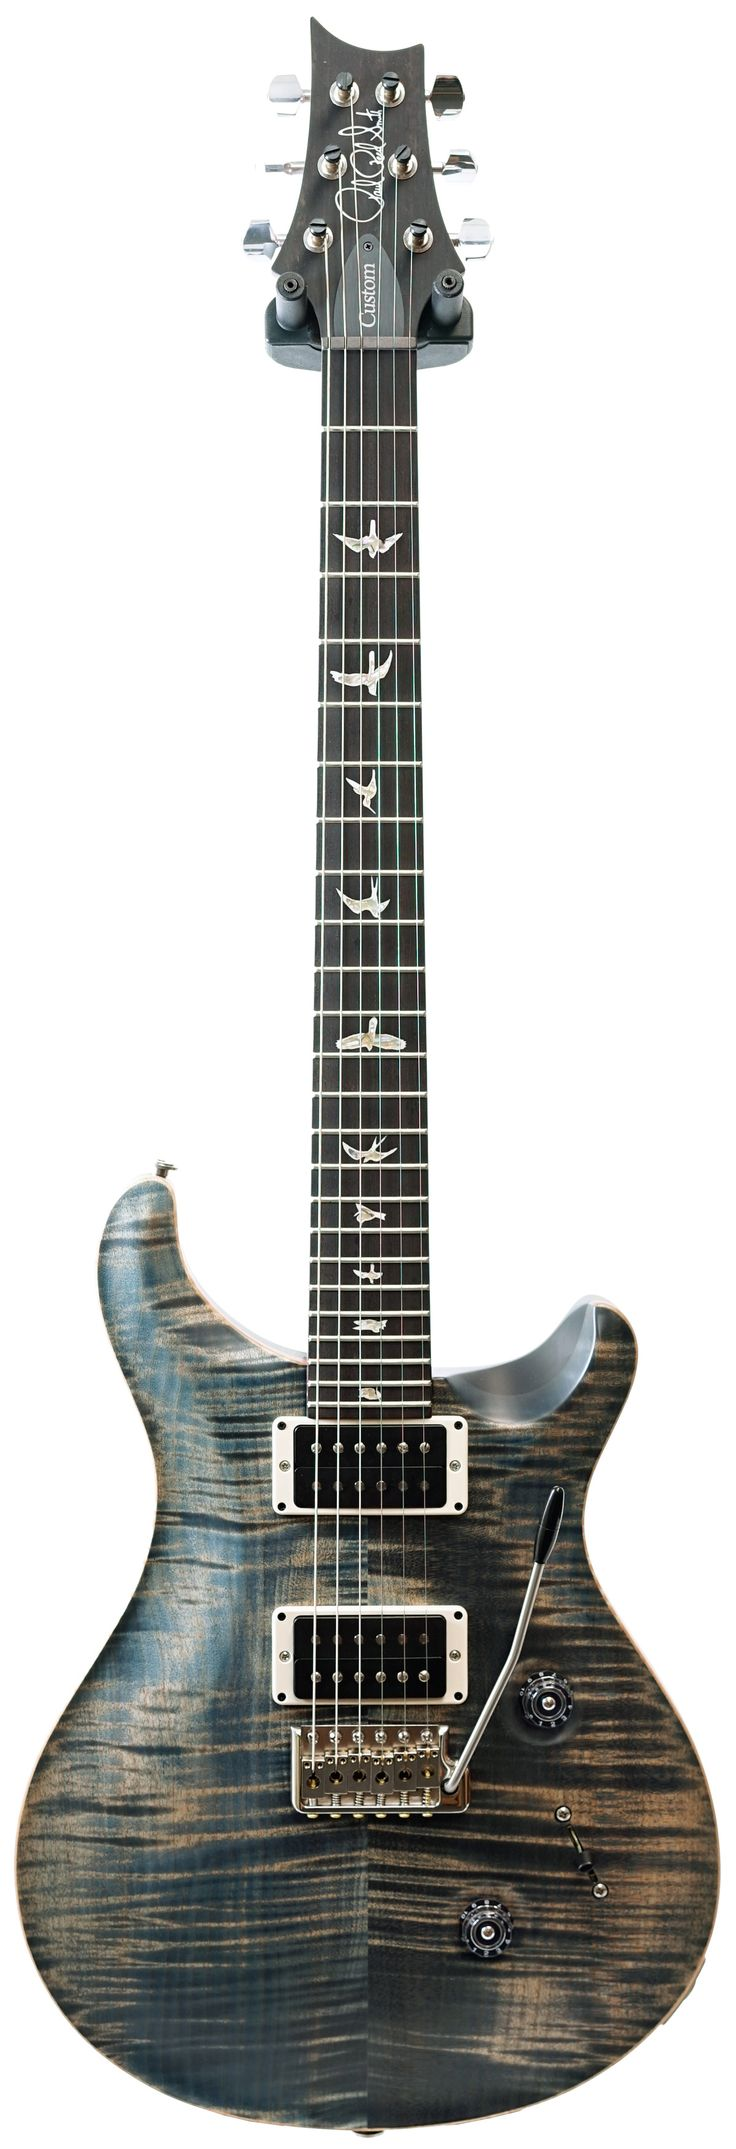 2262293dc14a2c5e9ea1f3cee3d95ab2 top blue satin 1162 best good vibrations images on pinterest electric guitars PRS Wiring Schematics at n-0.co